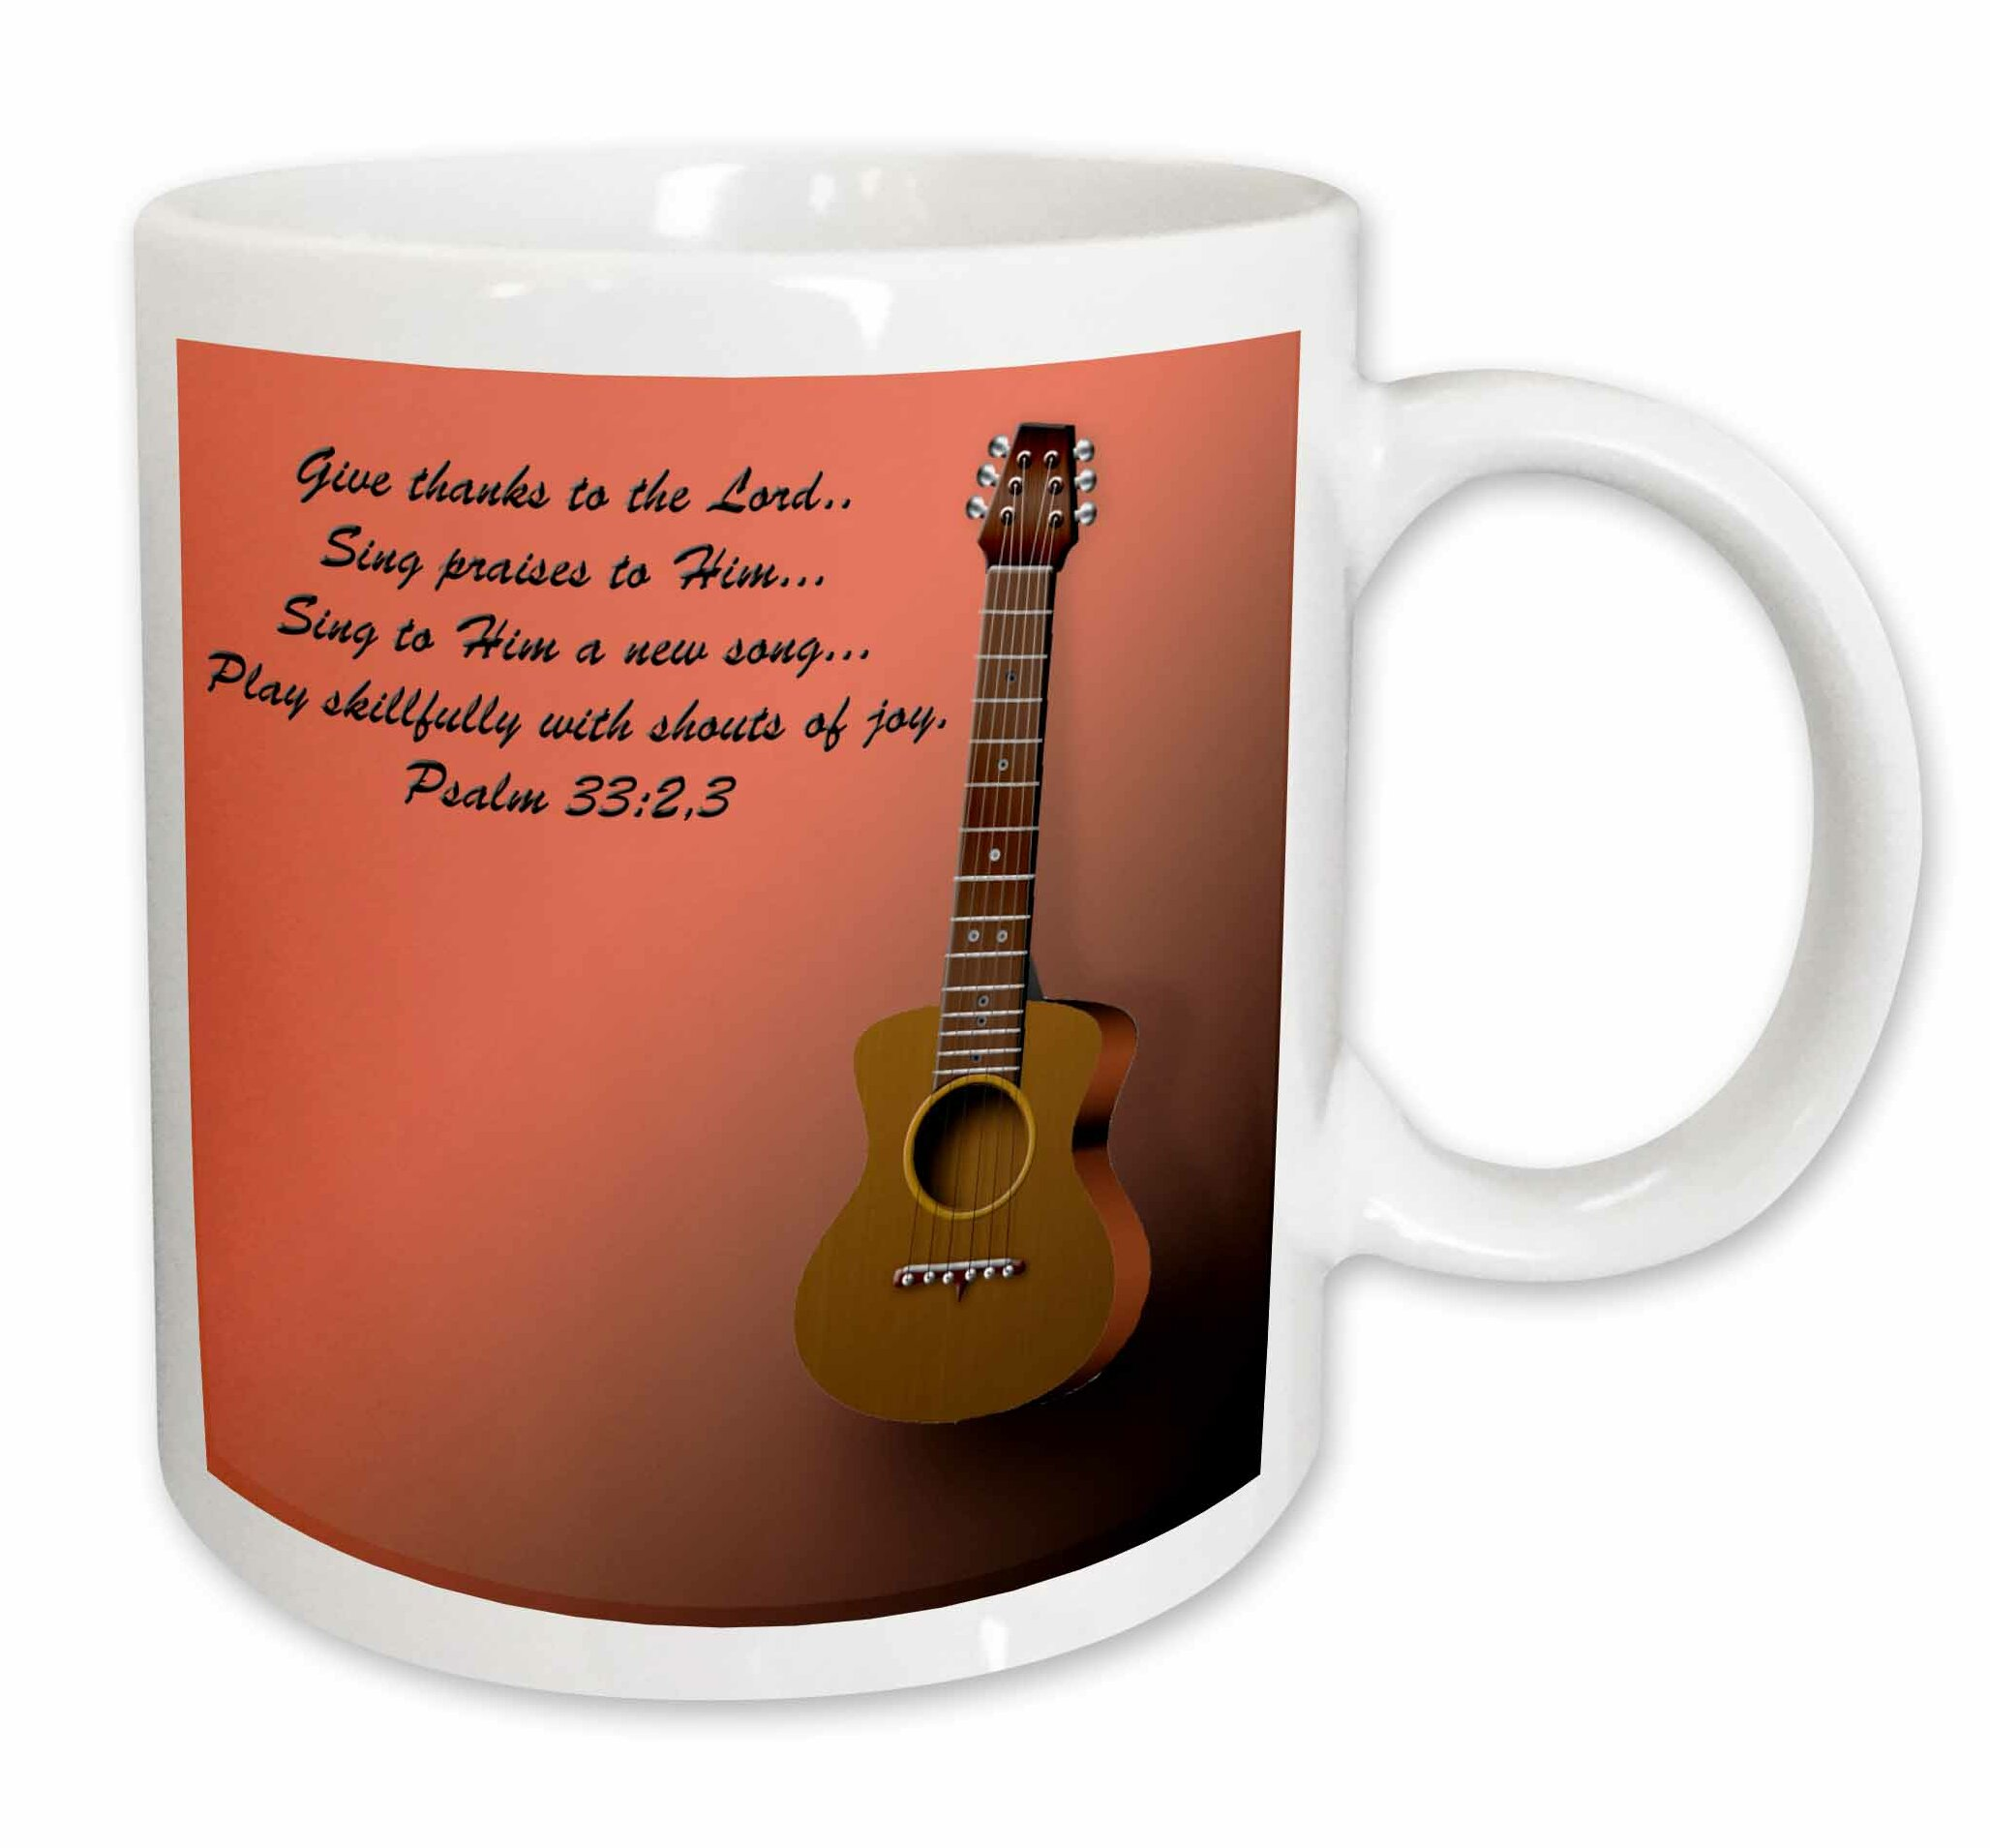 Classic Guitar and Bible Verse Sing To the Lord a New Song Coffee Mug